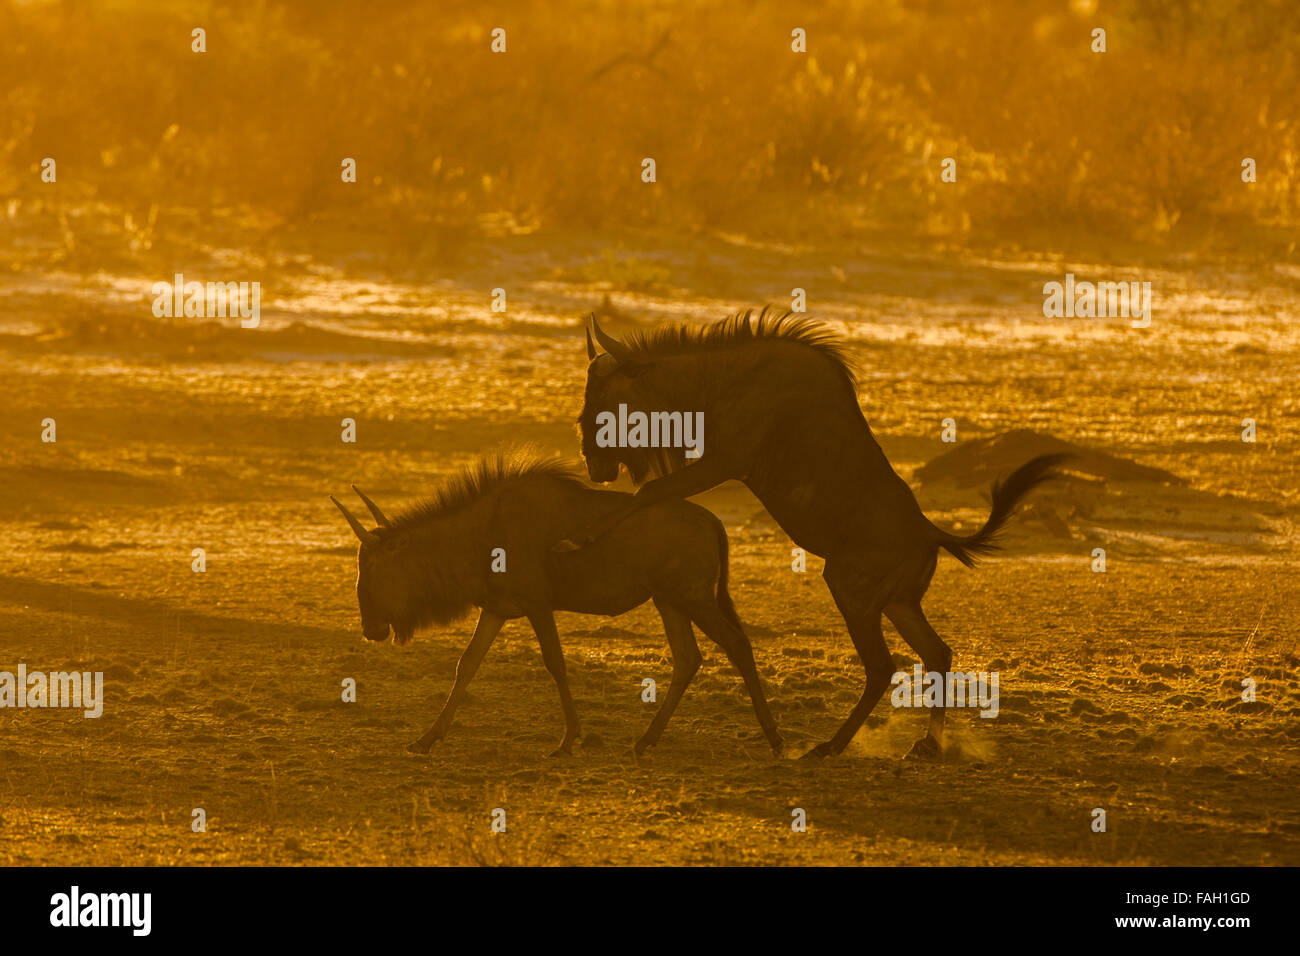 Blue wildebeest (Connochaetes taurinus) mating, morning light, Kgalagadi Transfrontier Park, Northern Cape, South - Stock Image